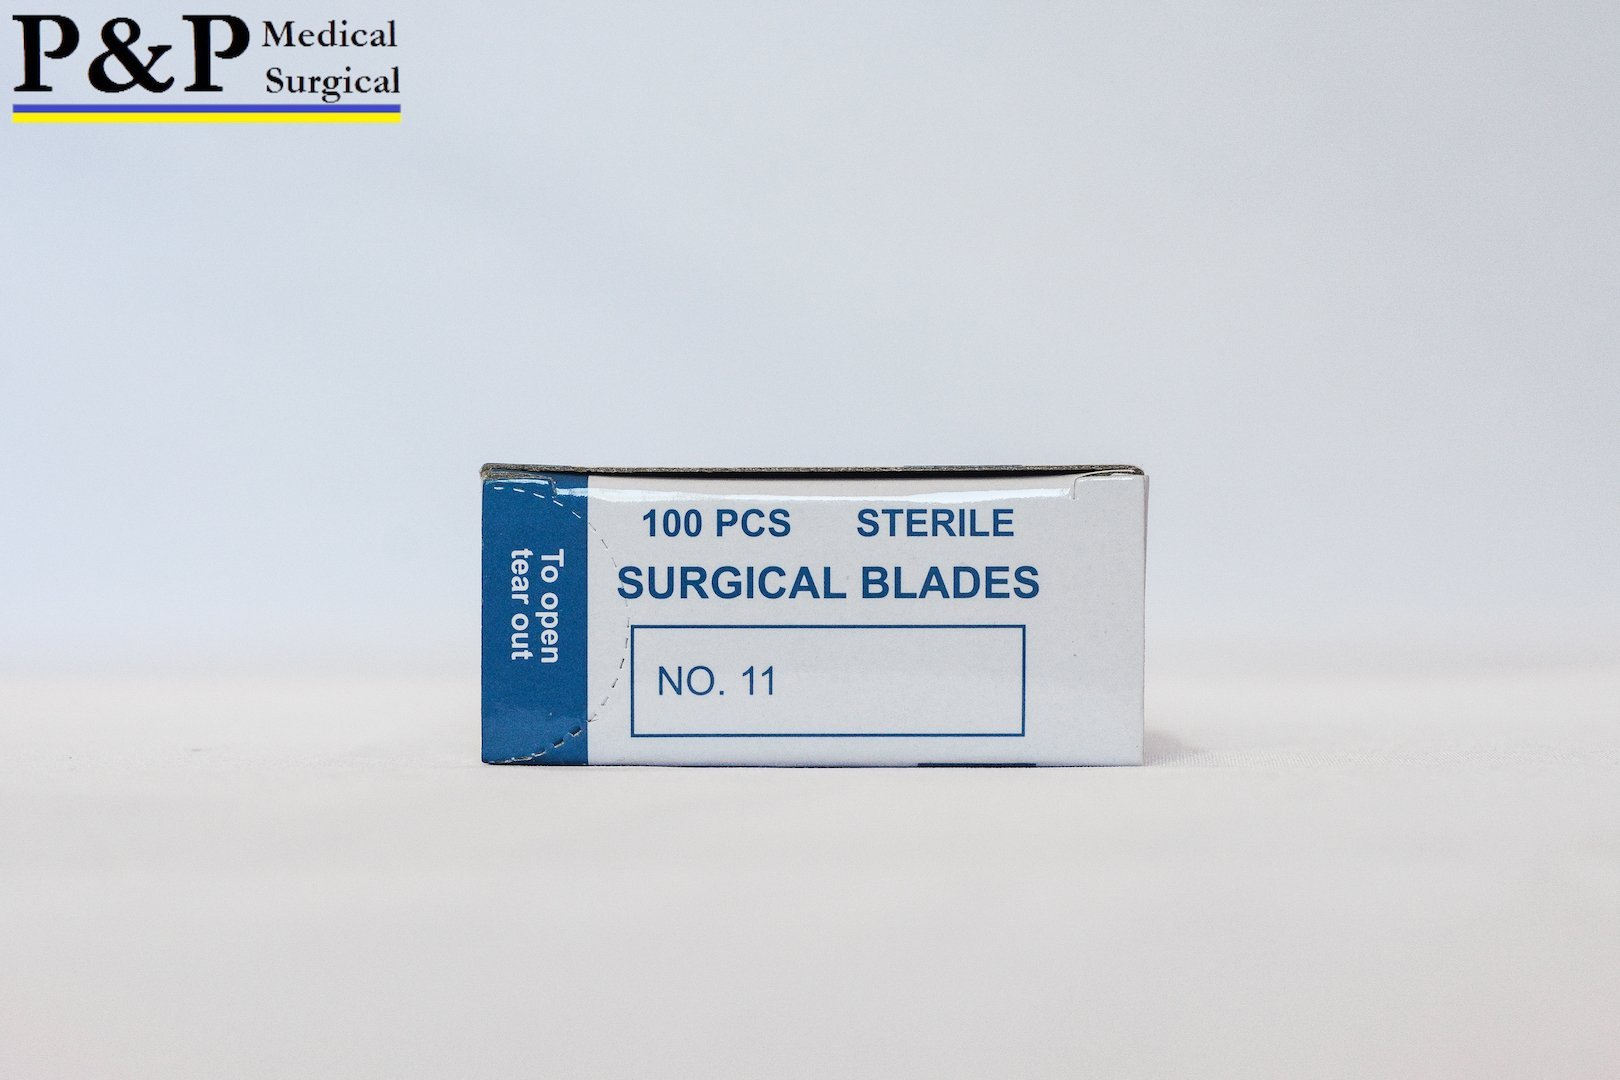 SCALPEL BLADE DISPOSABLE SURGICAL Size 11 (3000 blades) (High Grade Carbon Steel 2.1%,10xx) ,DESIGNED in USA by P&P Medical Surgical (Image #3)